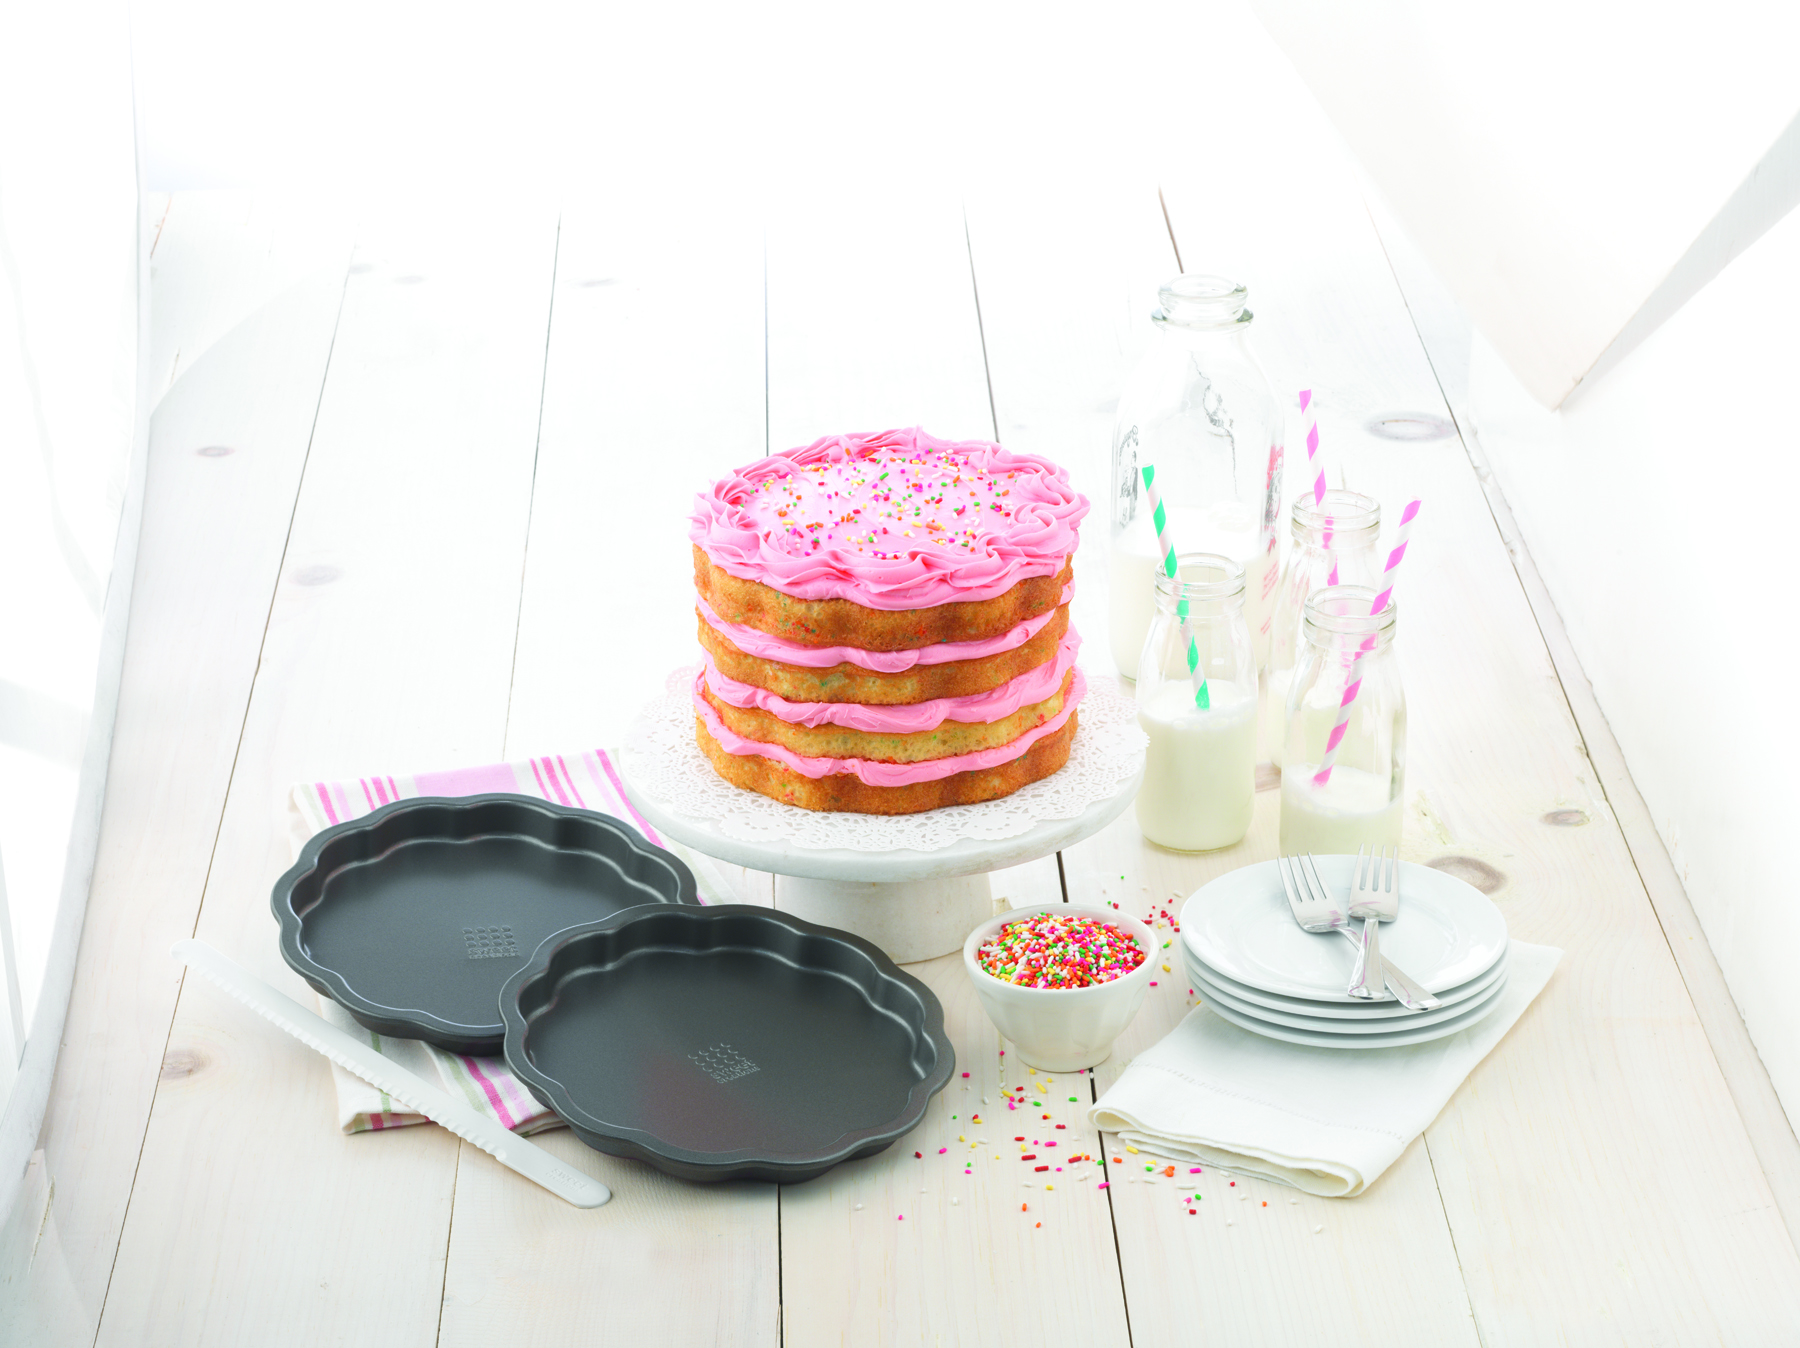 Edible Gifting With Sweet Creations By Good Cook